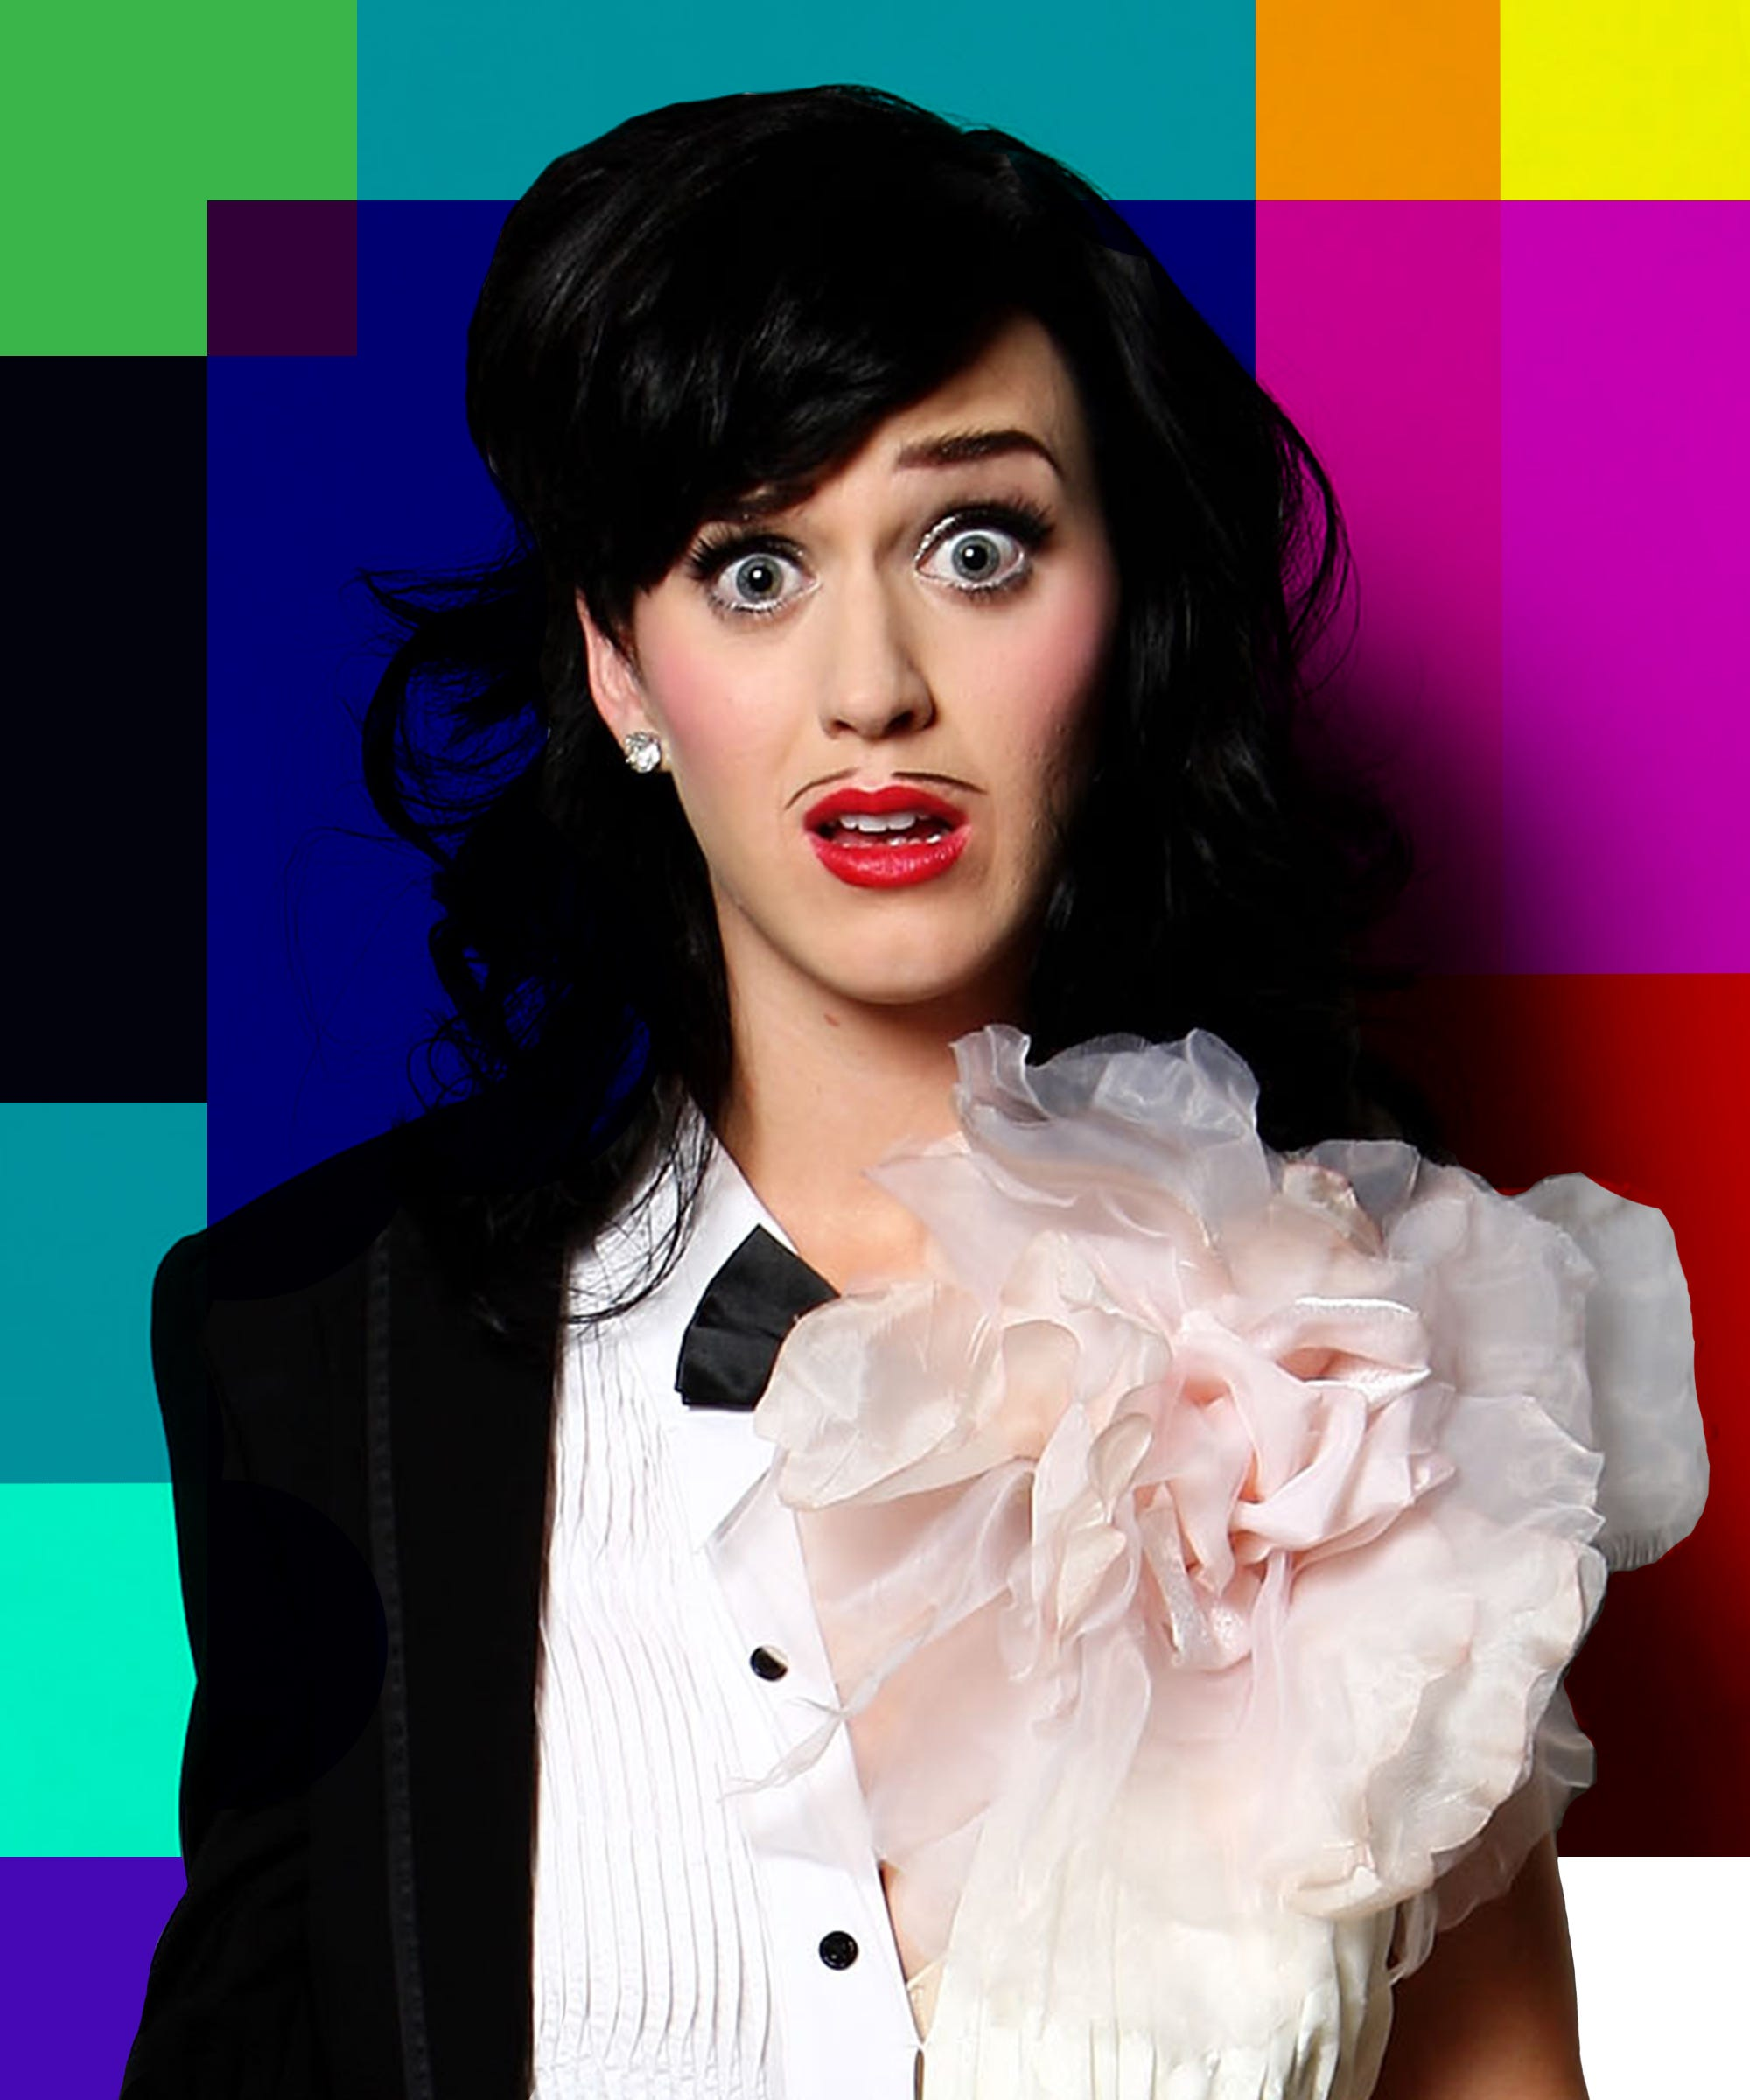 katy_perry_outfits_opener_elliot_salazar